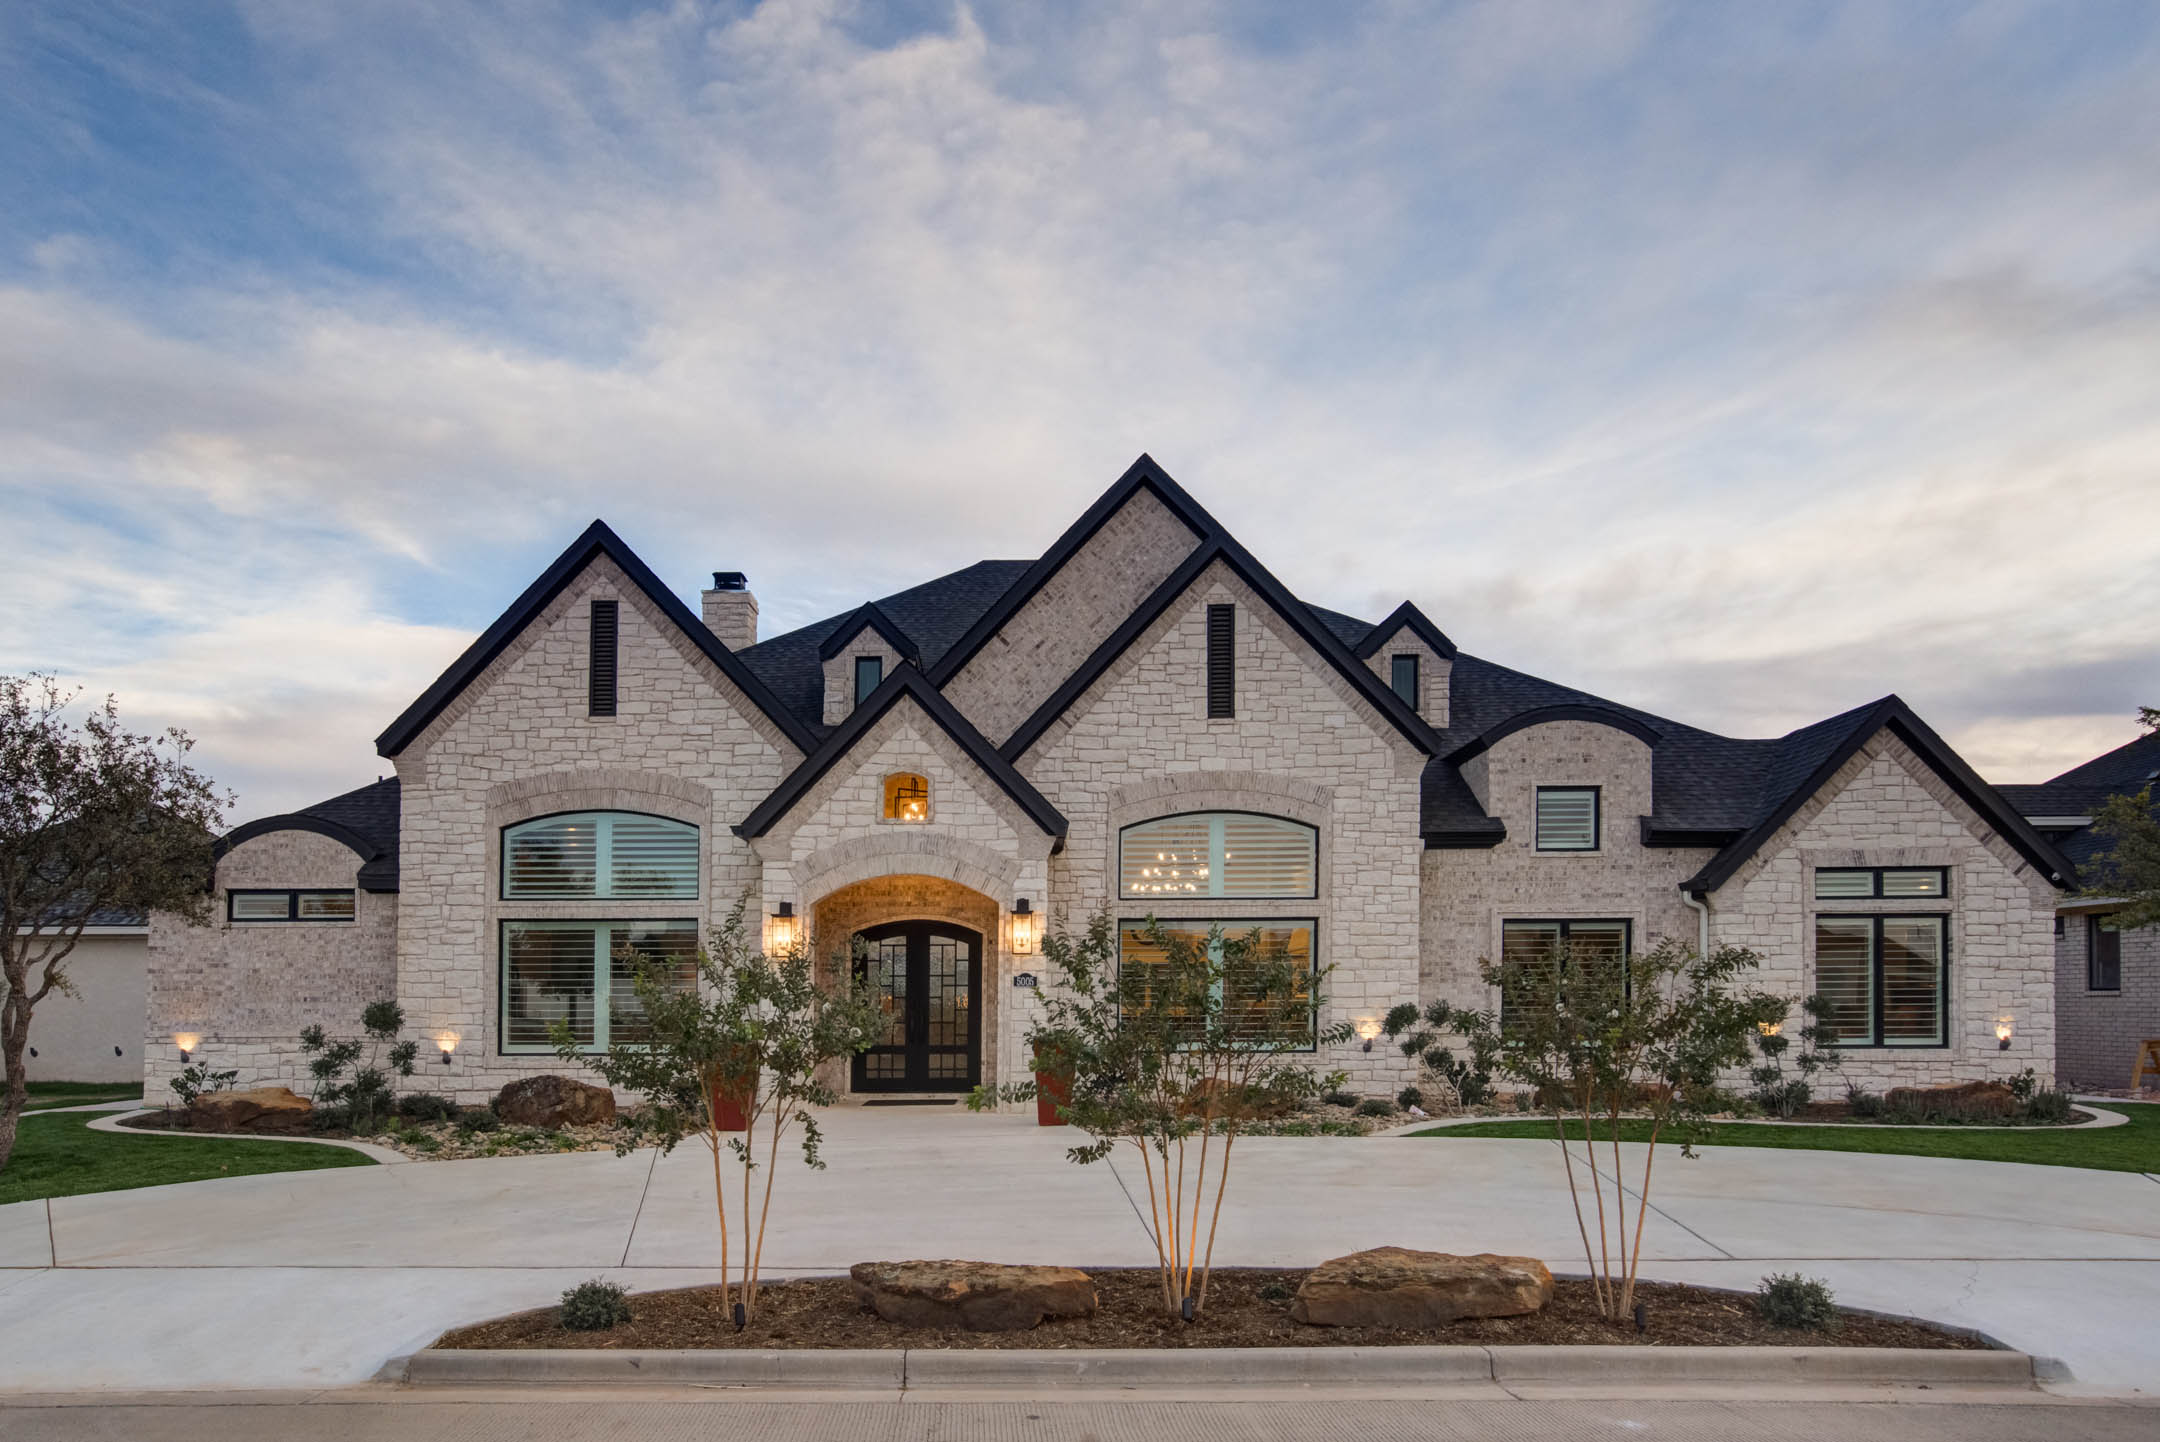 Beautiful custom home built in Lubbock, Texas.